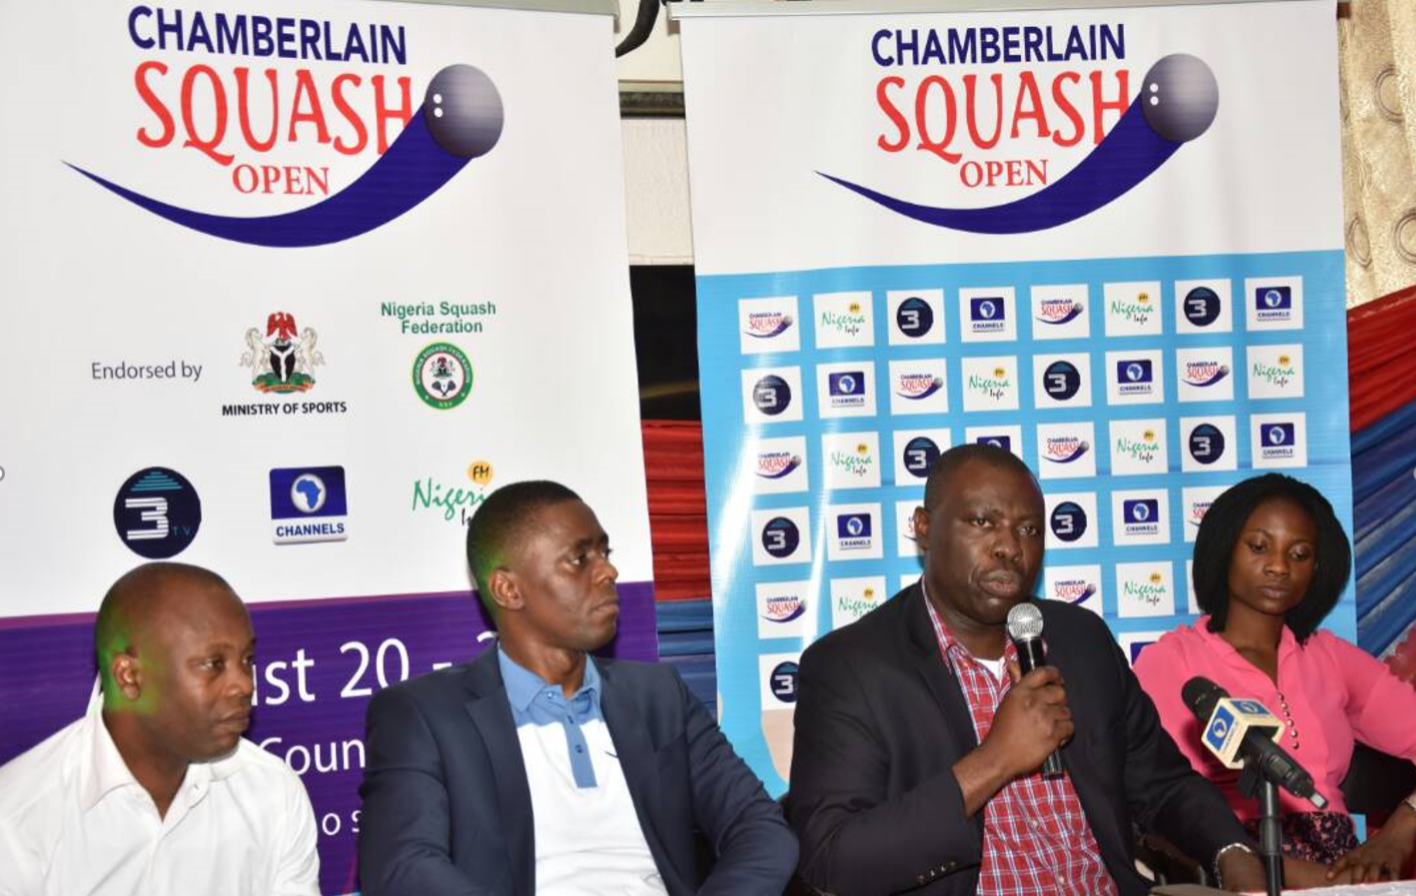 $12k Up As Prize Money At Maiden Chamberlain Squash Open